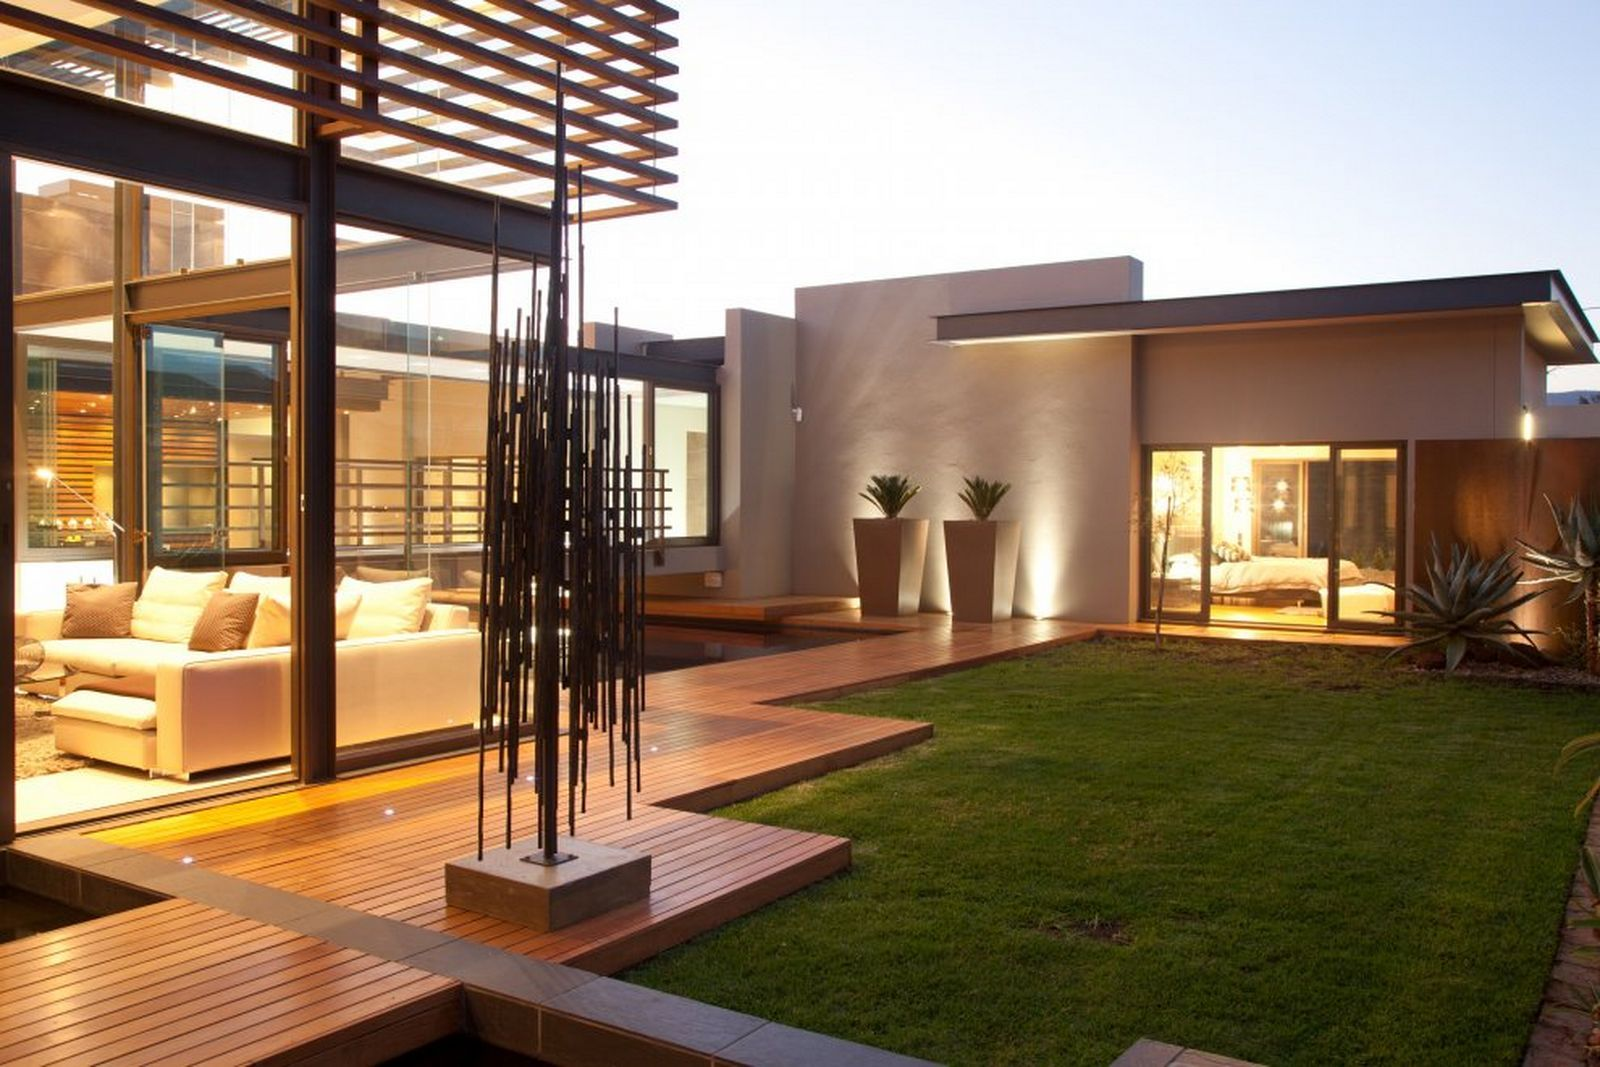 Living At Home Abo sculpture adds interest to the modern outdoor living space stylish